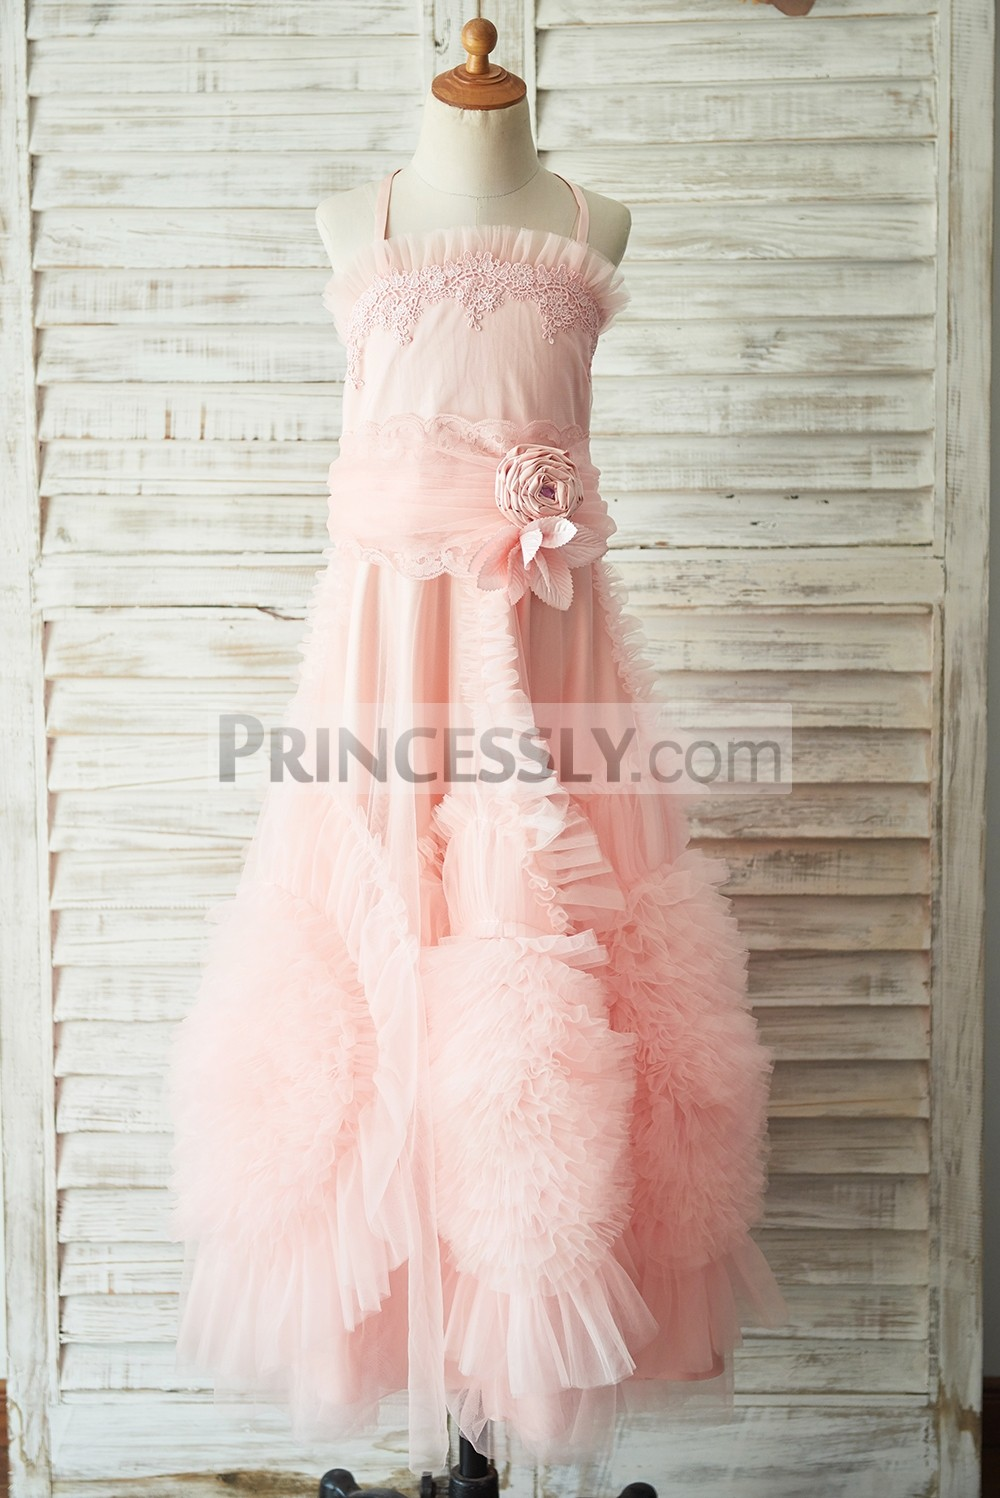 Spaghetti straps pink satin tulle flower girl dress